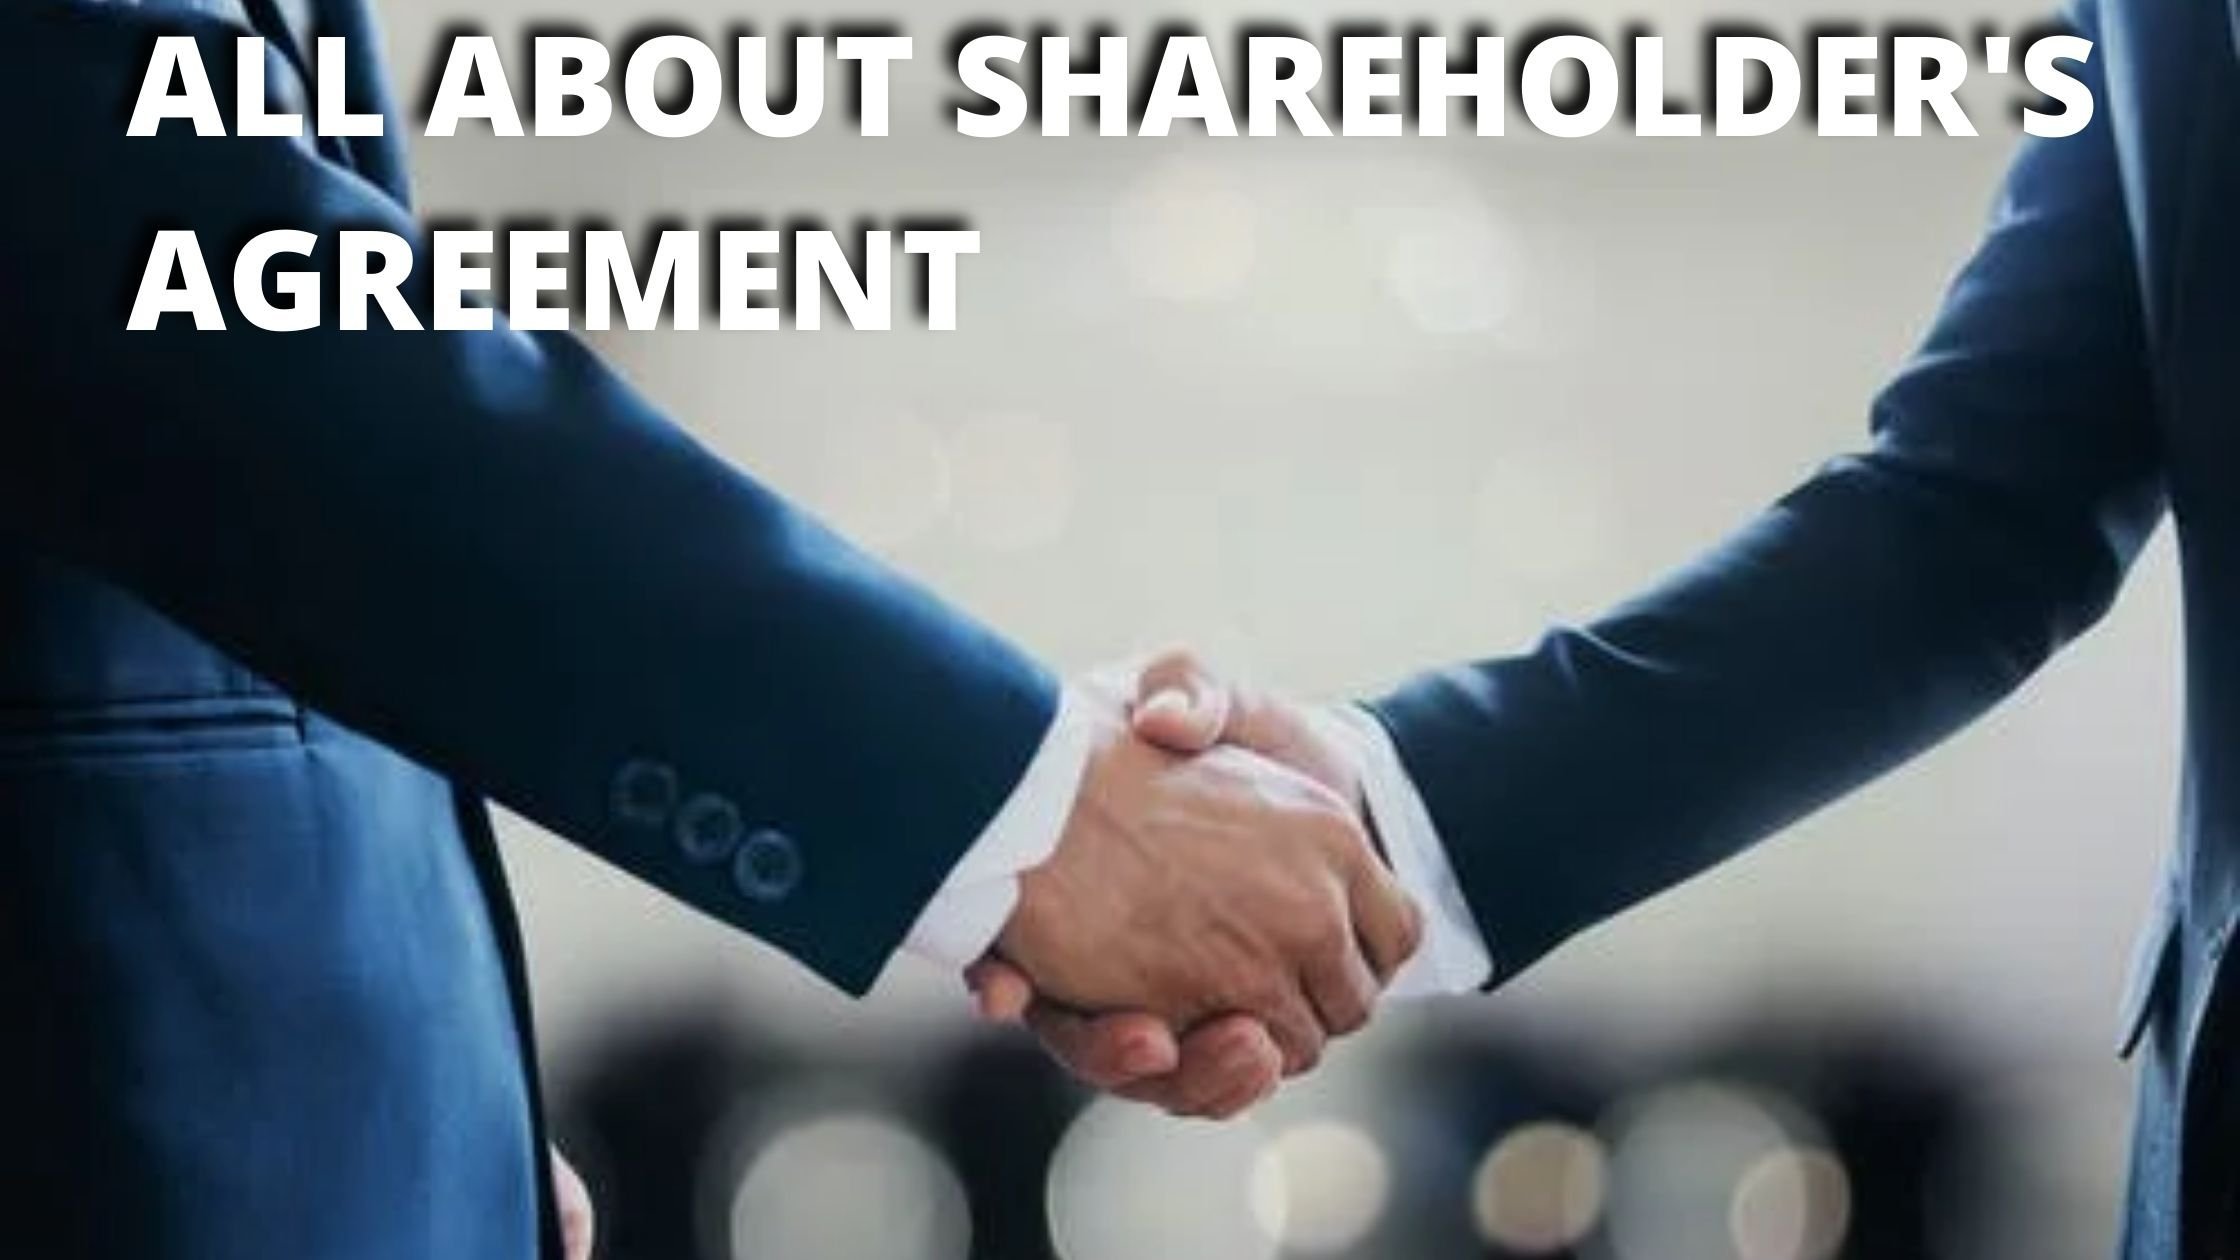 A PRACTICAL GUIDE TO THE SHAREHOLDER'S AGREEMENT